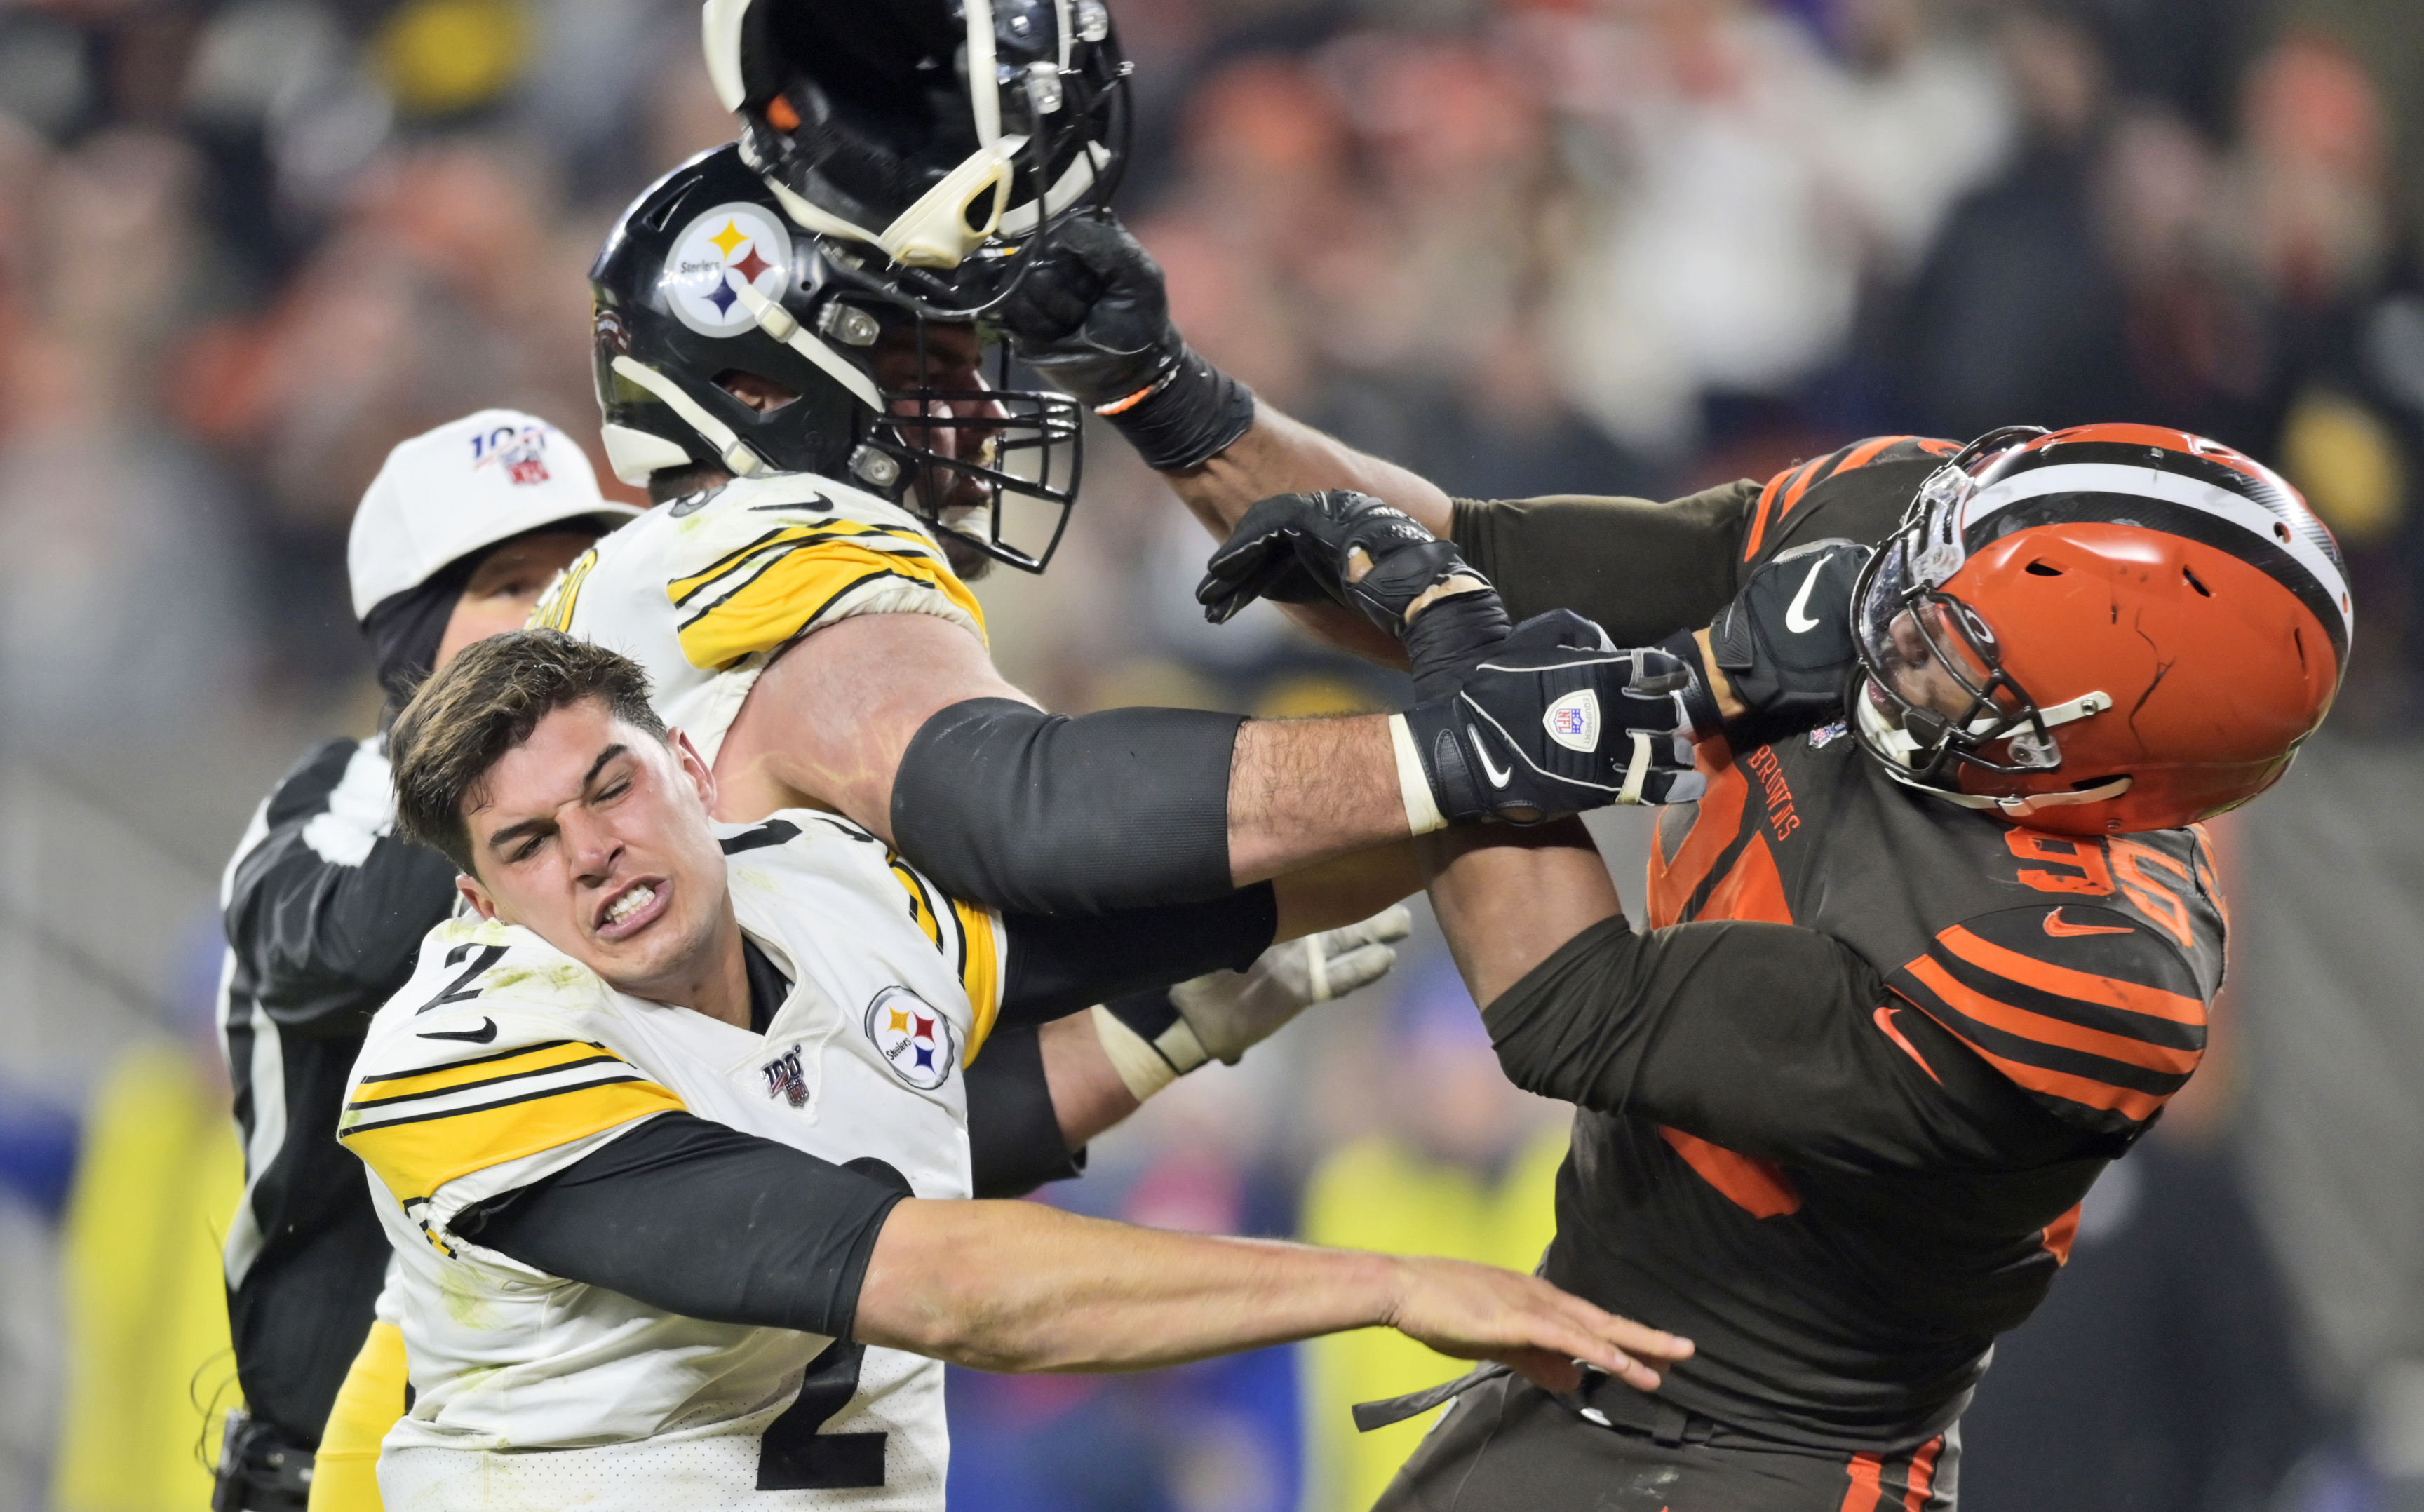 VIDEO: Browns QB Baker Mayfield reacts to Myles Garrett's ejection after Browns DE swings helmet at Steelers QB Mason Rudolph's head